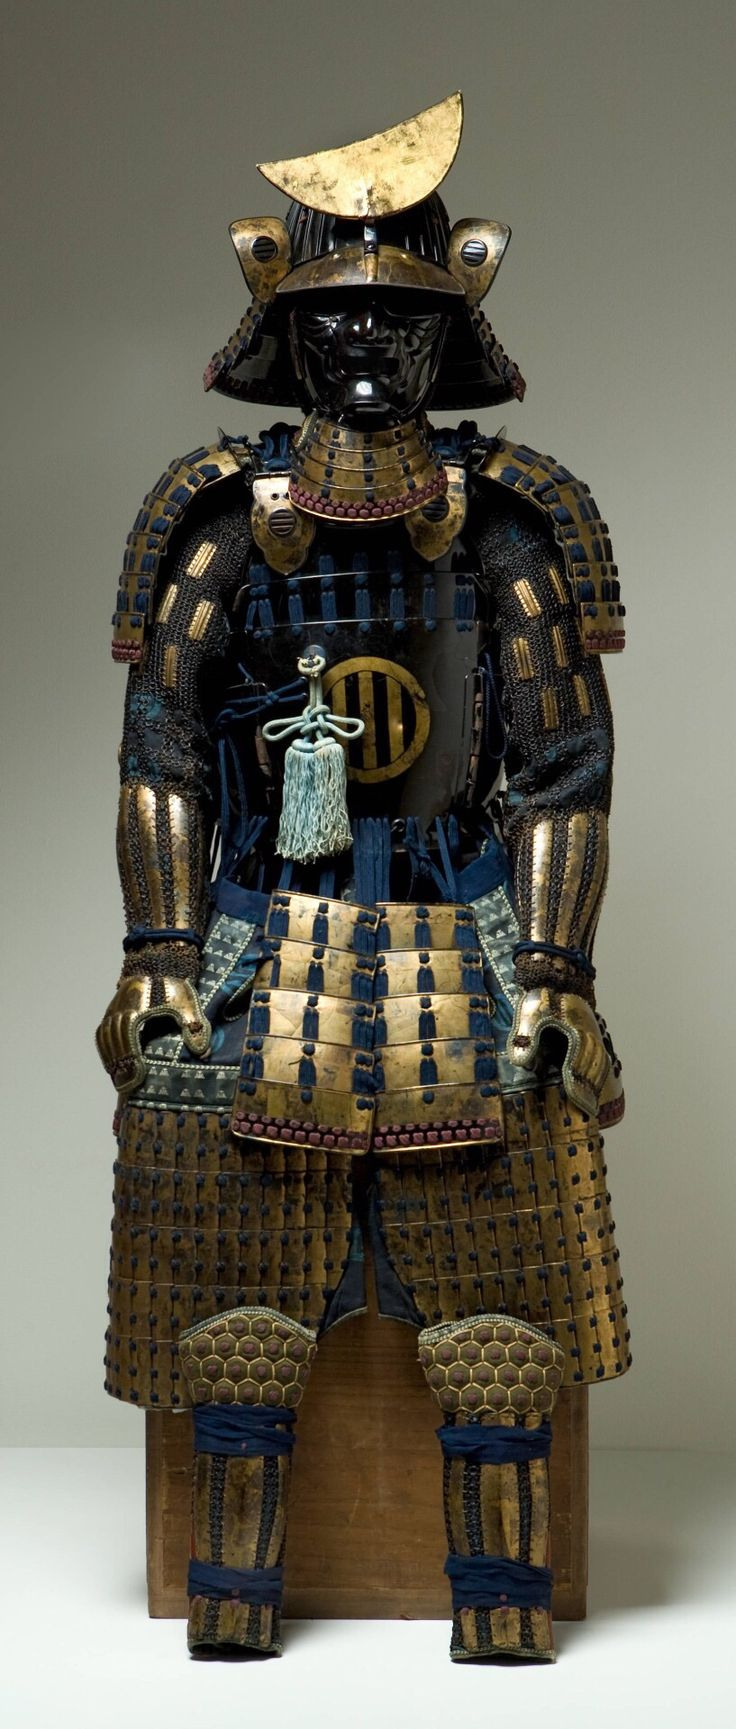 Suit of Armor 1700-1799 Edo Period Japan David Owsley Museum of Art